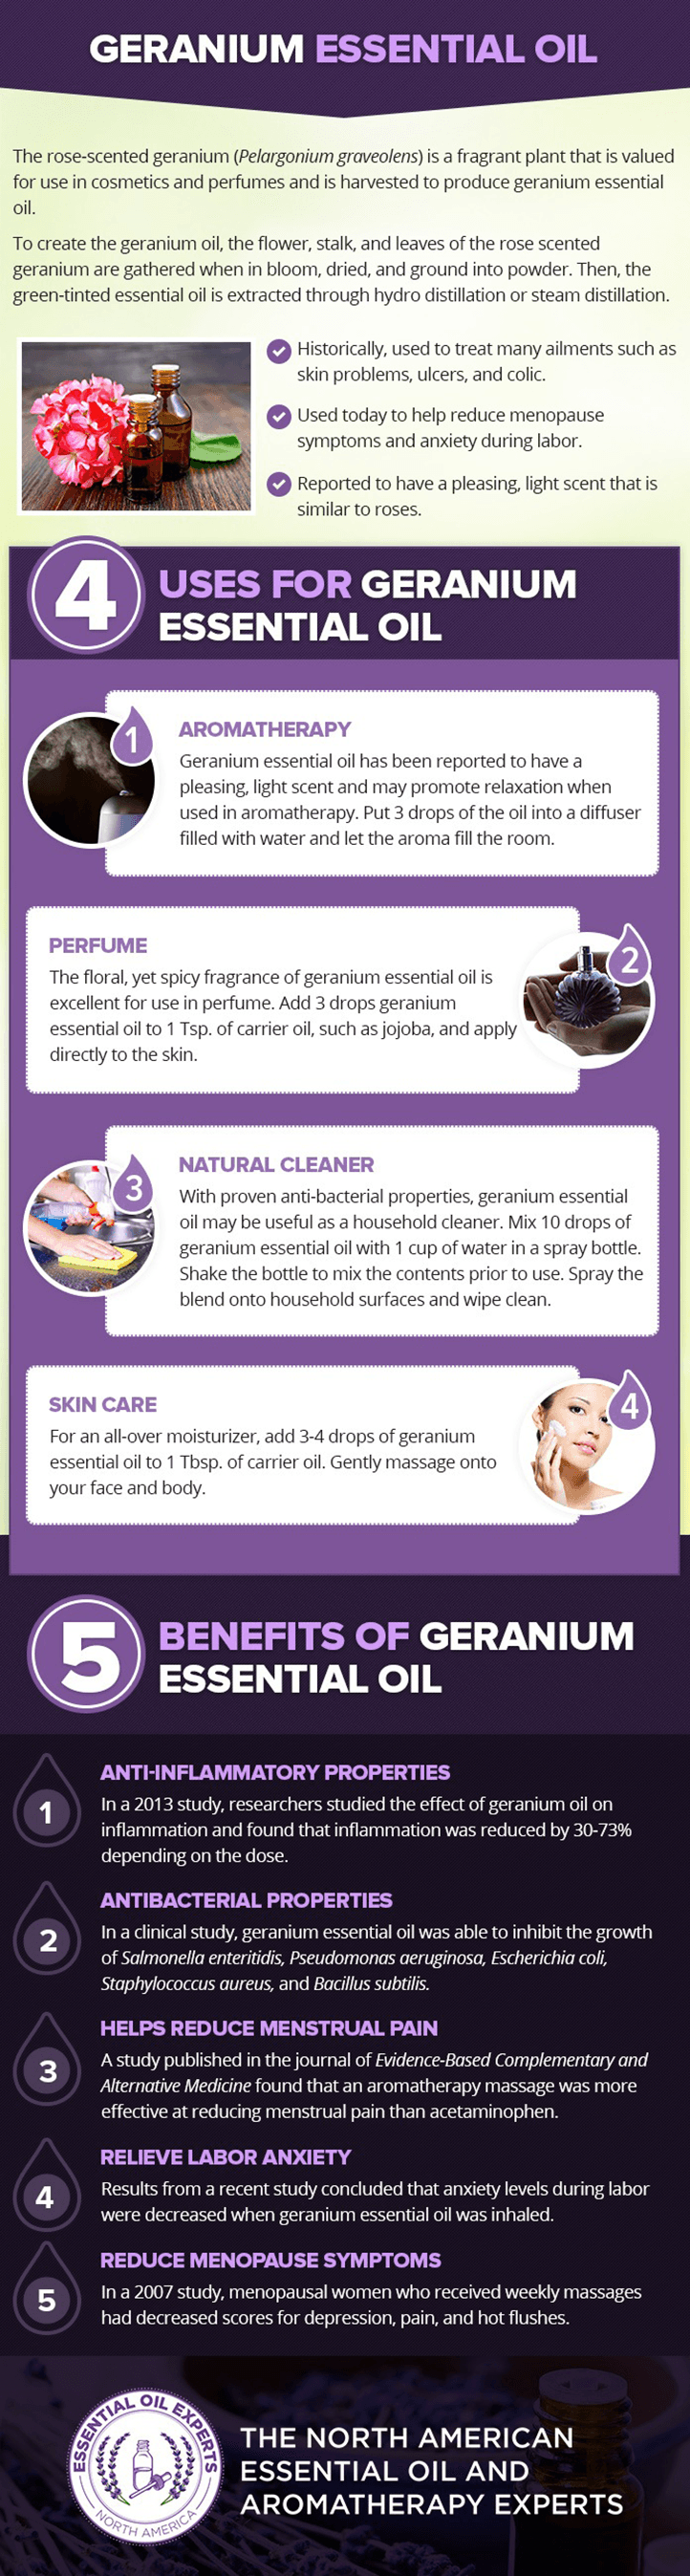 where to buy rose geranium essential oil, uses and benefits